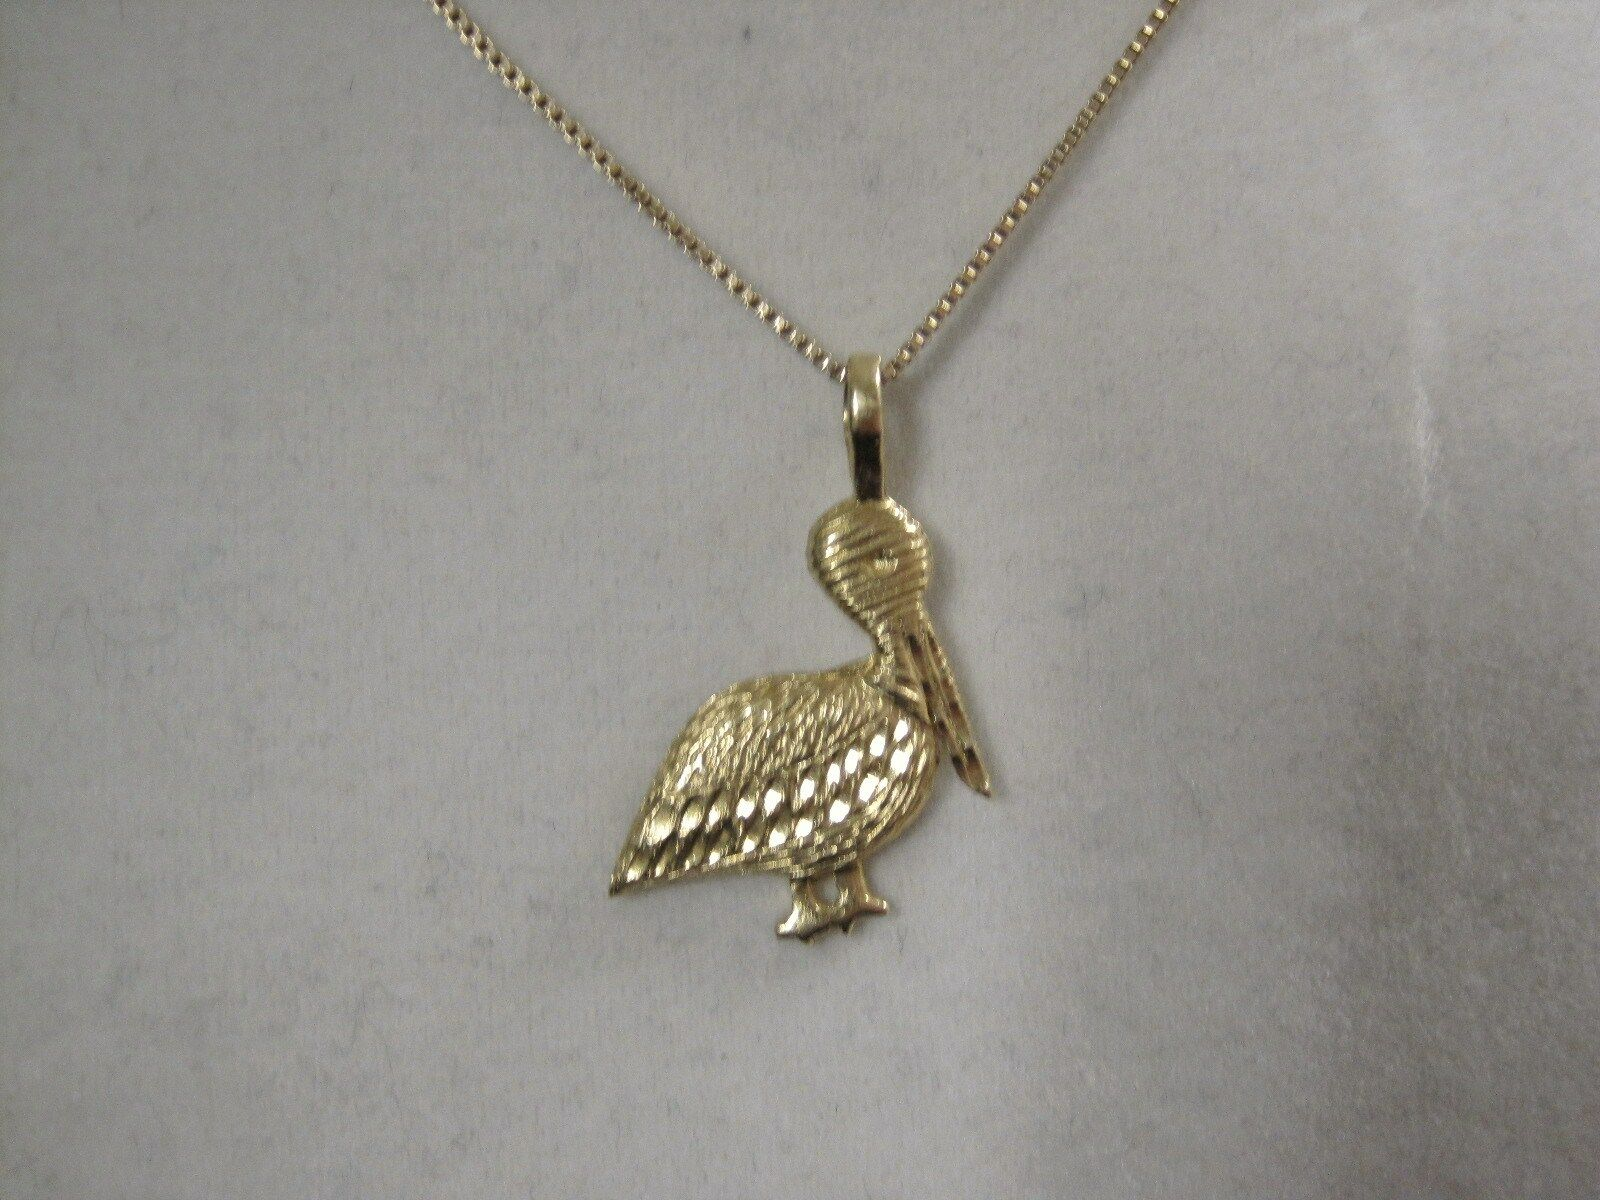 LQQK Very Nice & Detailed 14K Solid gold Pelican bird  Pendant Charm Must See